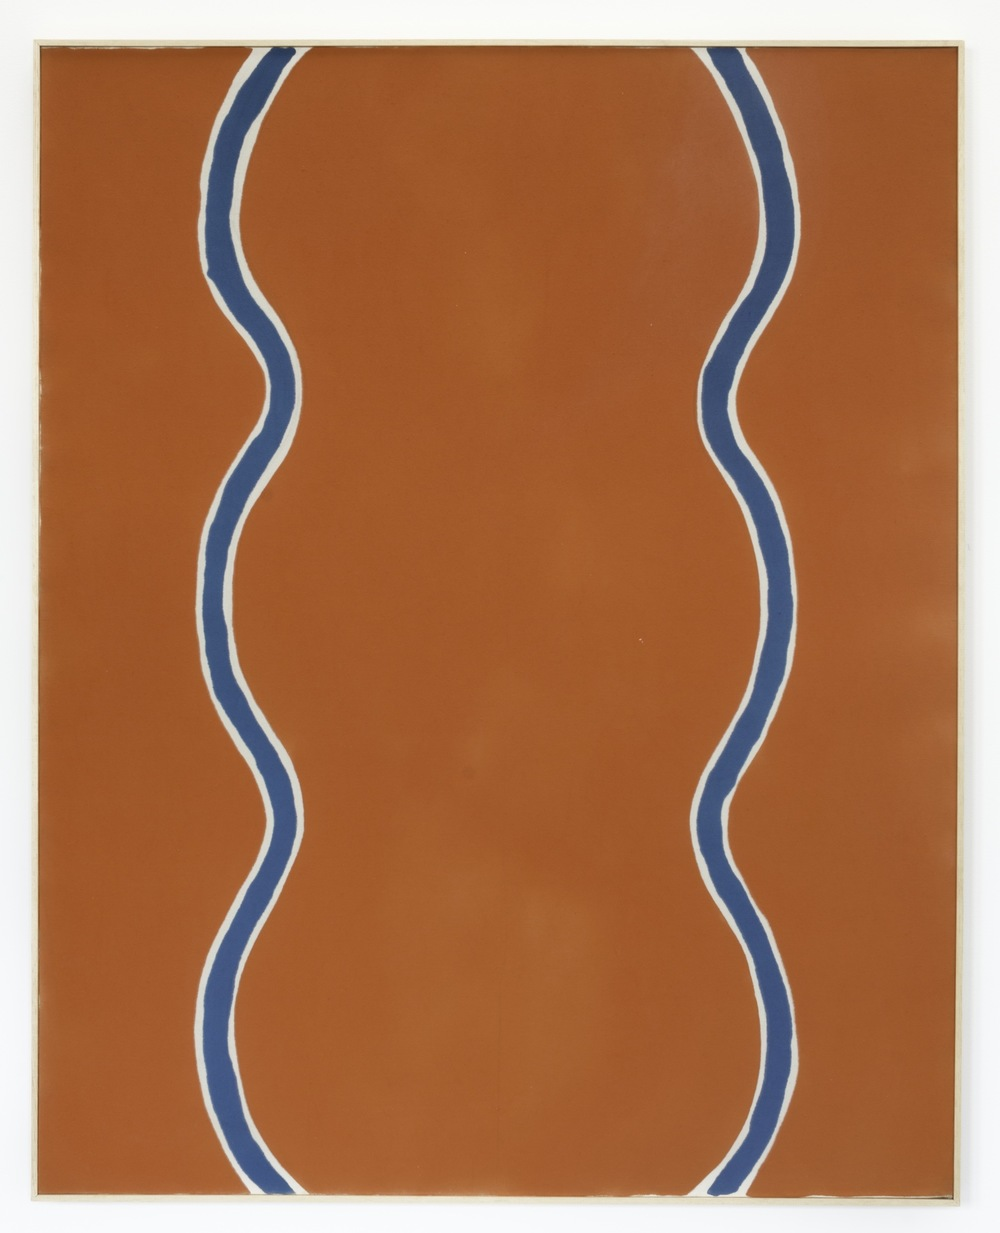 Paul Feeley,  Pakijanes , 1963, Oil-based enamel on canvas, 60 x 48 inches, PFE6312  Lawrence Markey Inc.  3/5